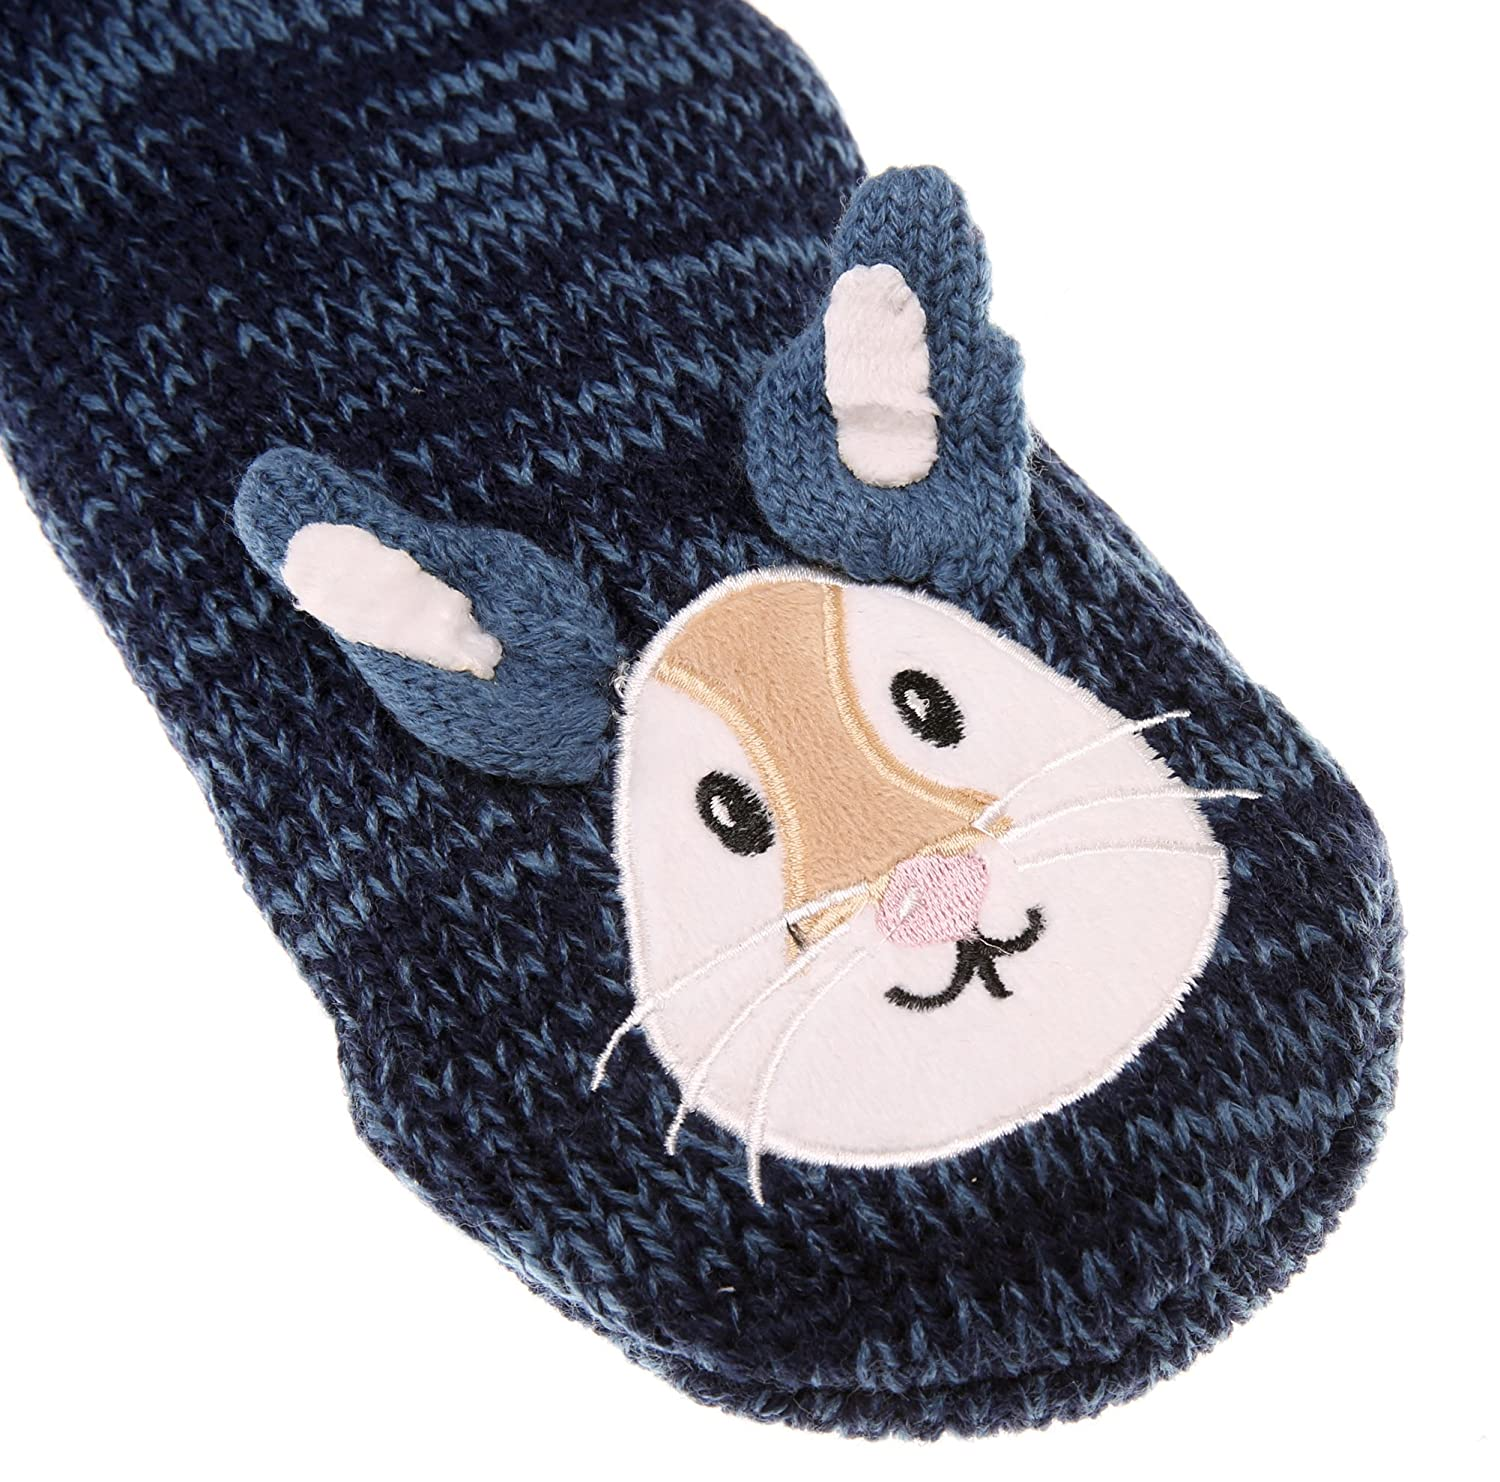 Amazon.com: YEBING Womens Cute Knit Cartoon Animal Face Soft Warm Fuzzy Fleece Lining Winter Home Slipper Socks (Rabbit): Home & Kitchen